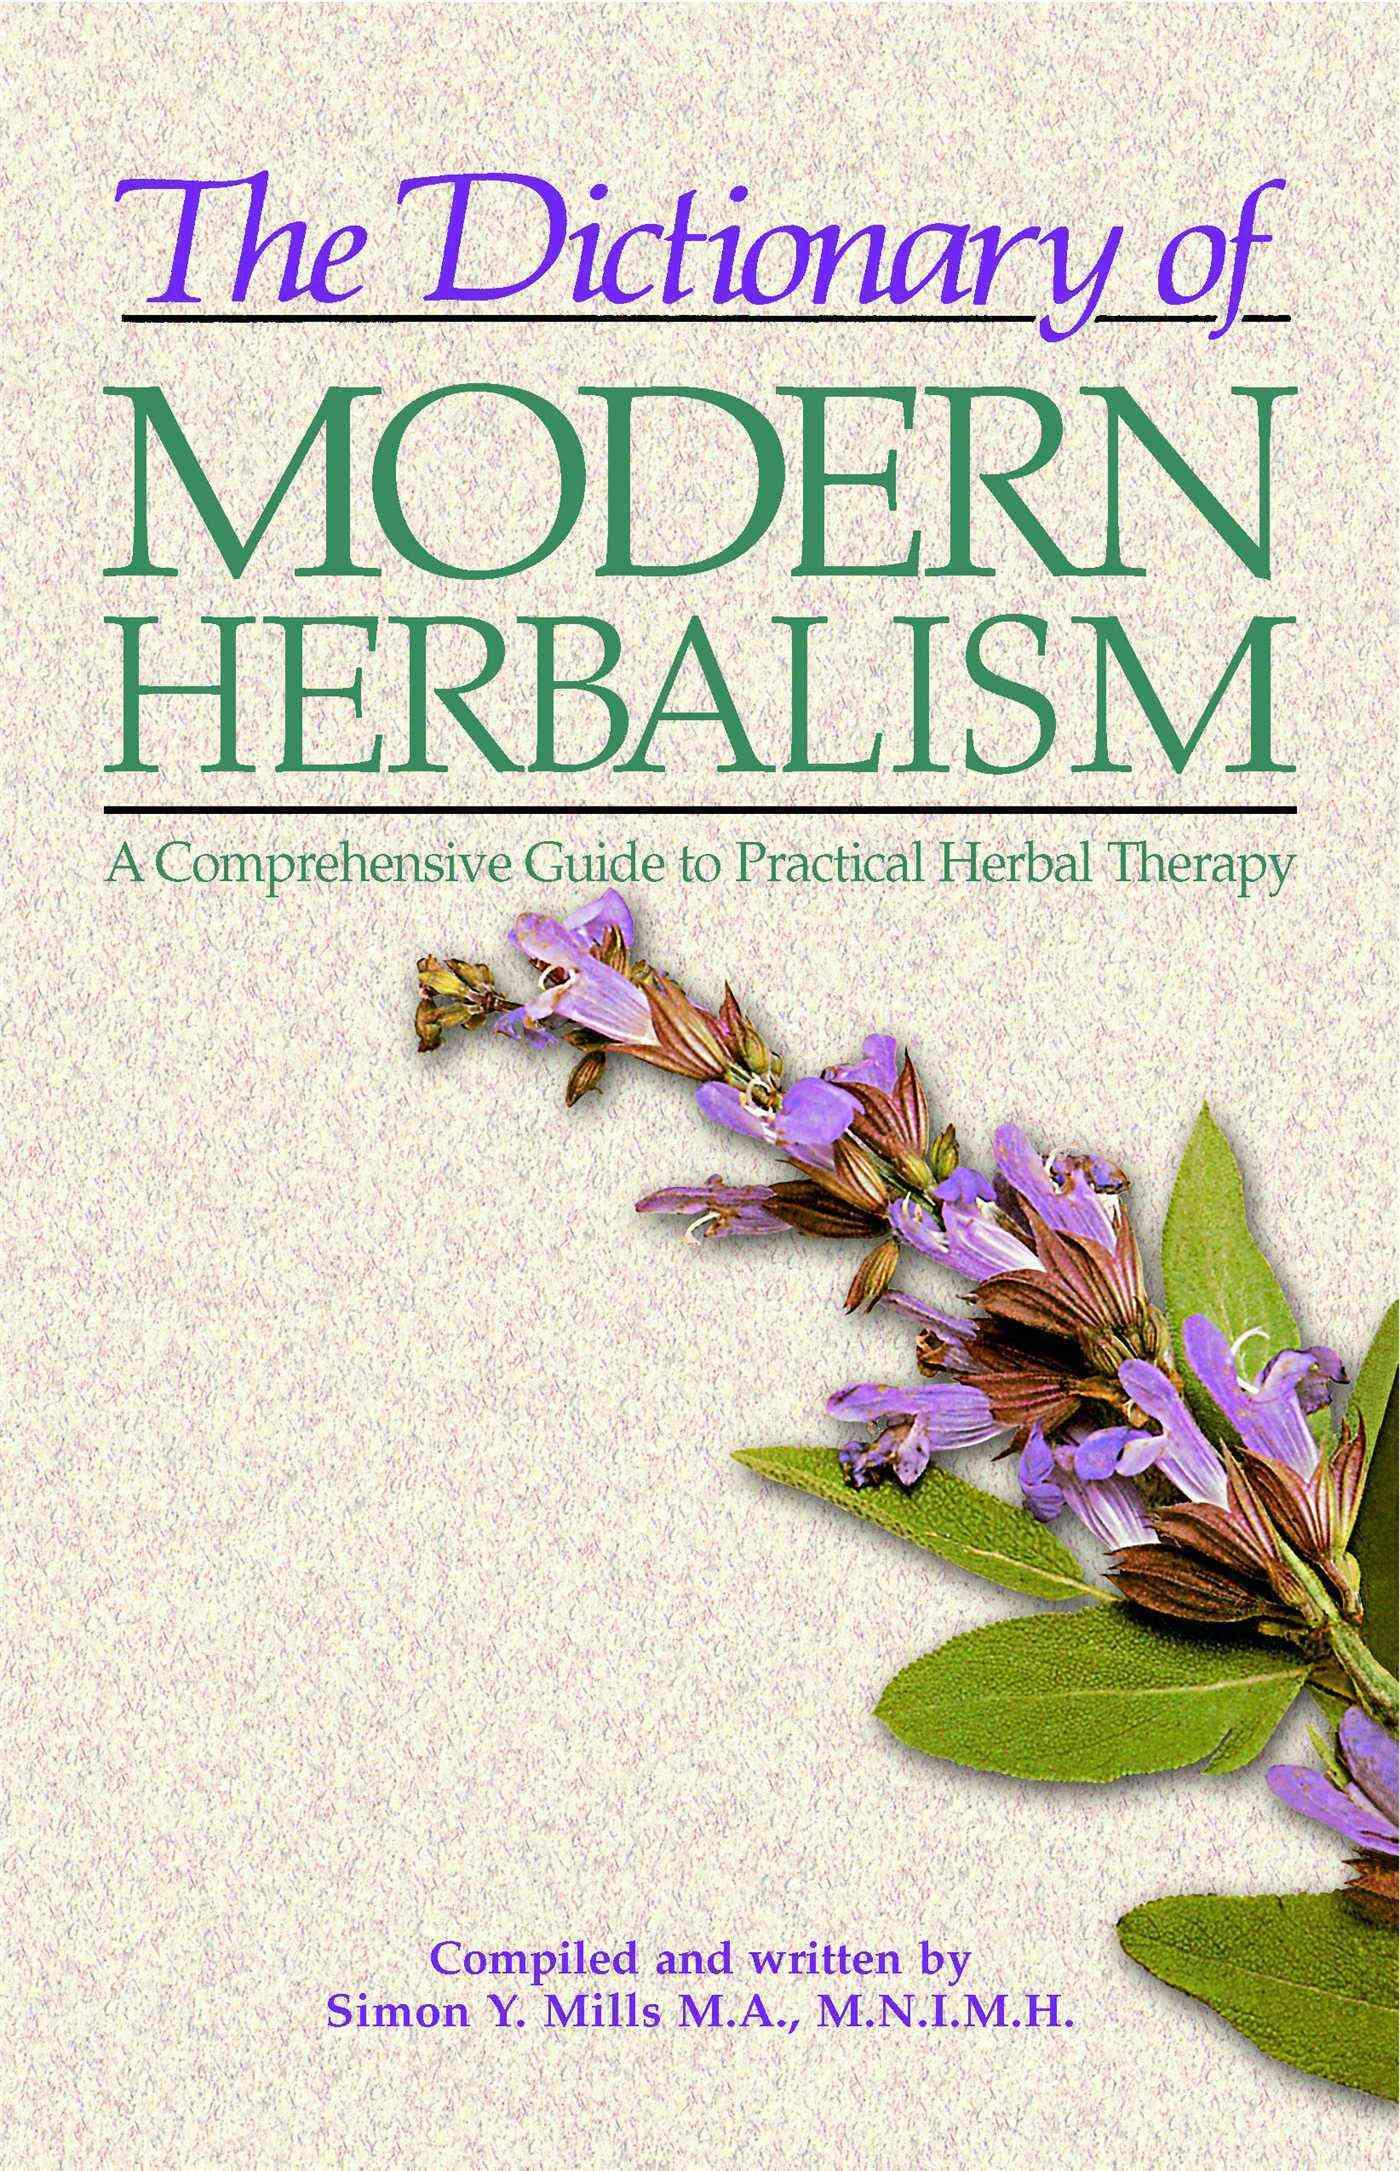 The Dictionary of Modern Herbalism: A Comprehensive Guide to Practical Herbal Therapy (Paperback)